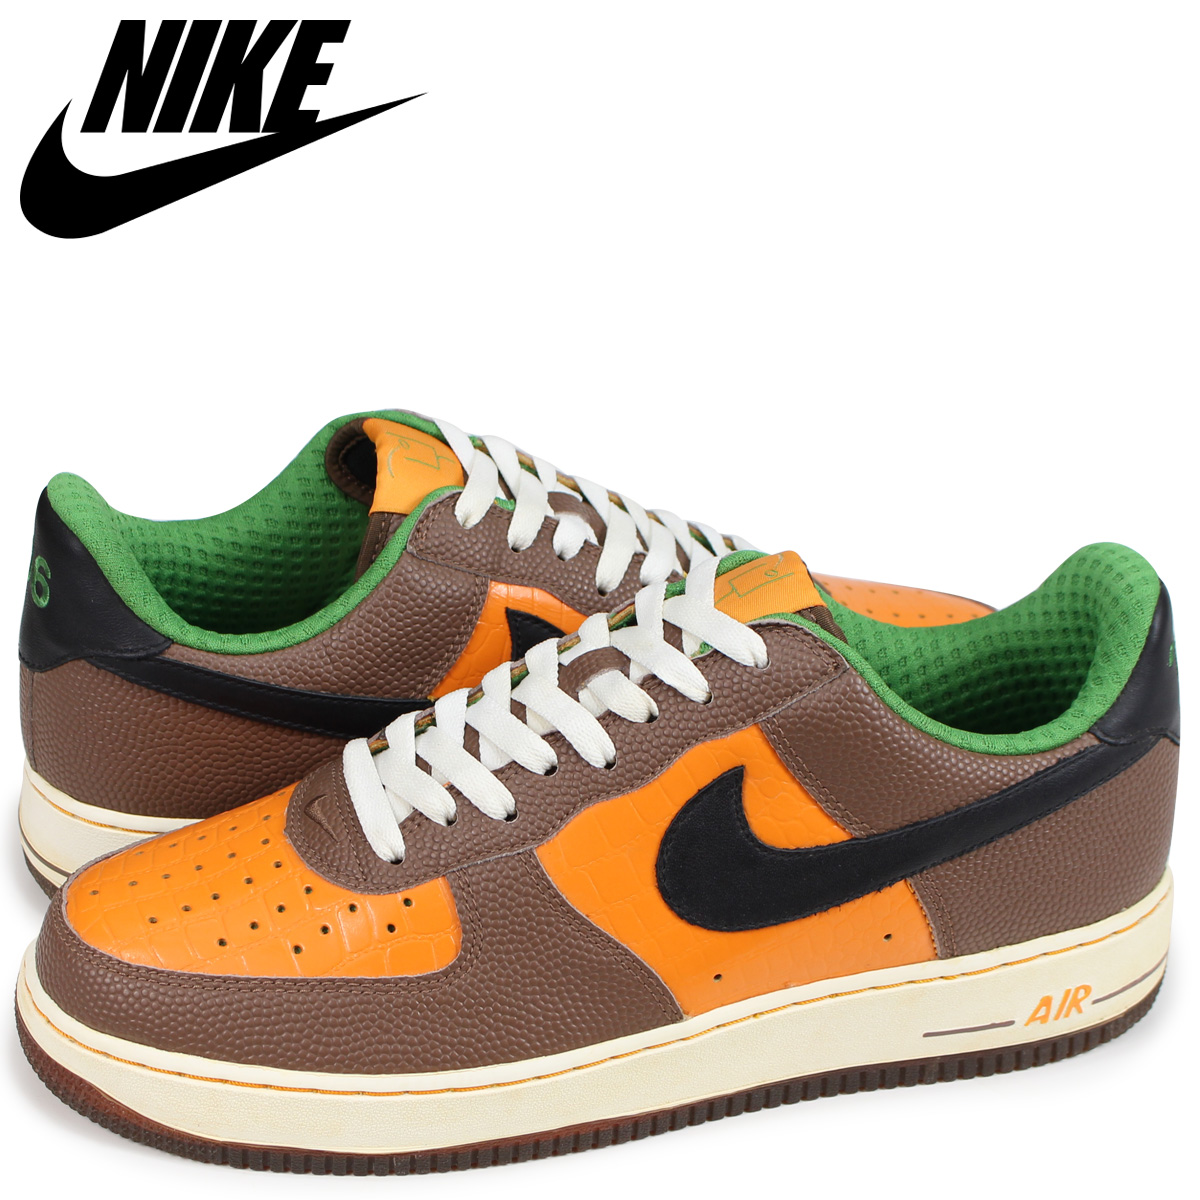 size 40 b6f69 d9c99 NIKE Nike air force 1 sneakers men AIR FORCE 1 LOW PREMIUM NFL 312,945-801  orange